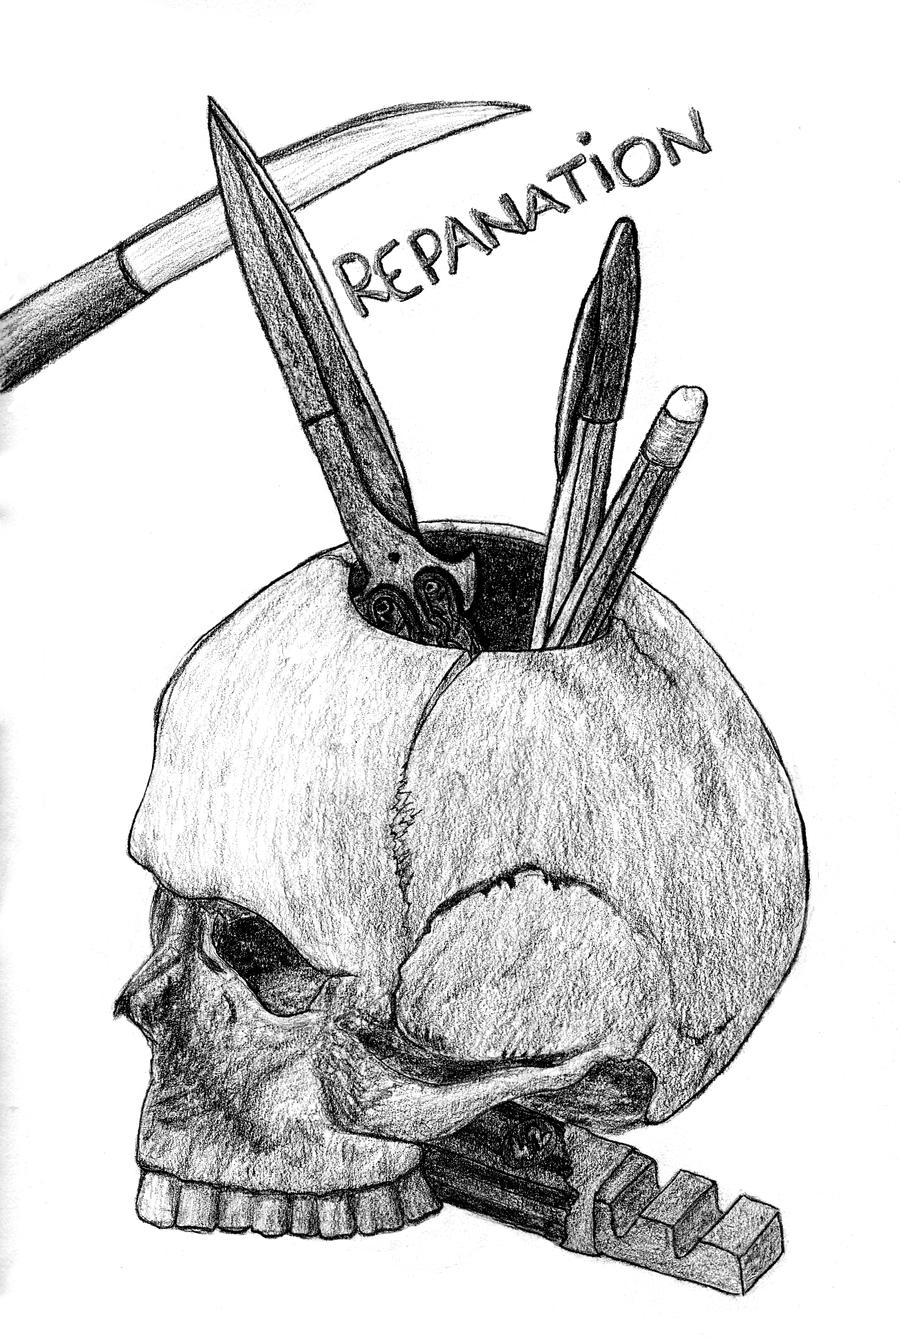 Trepanation42's Profile Picture